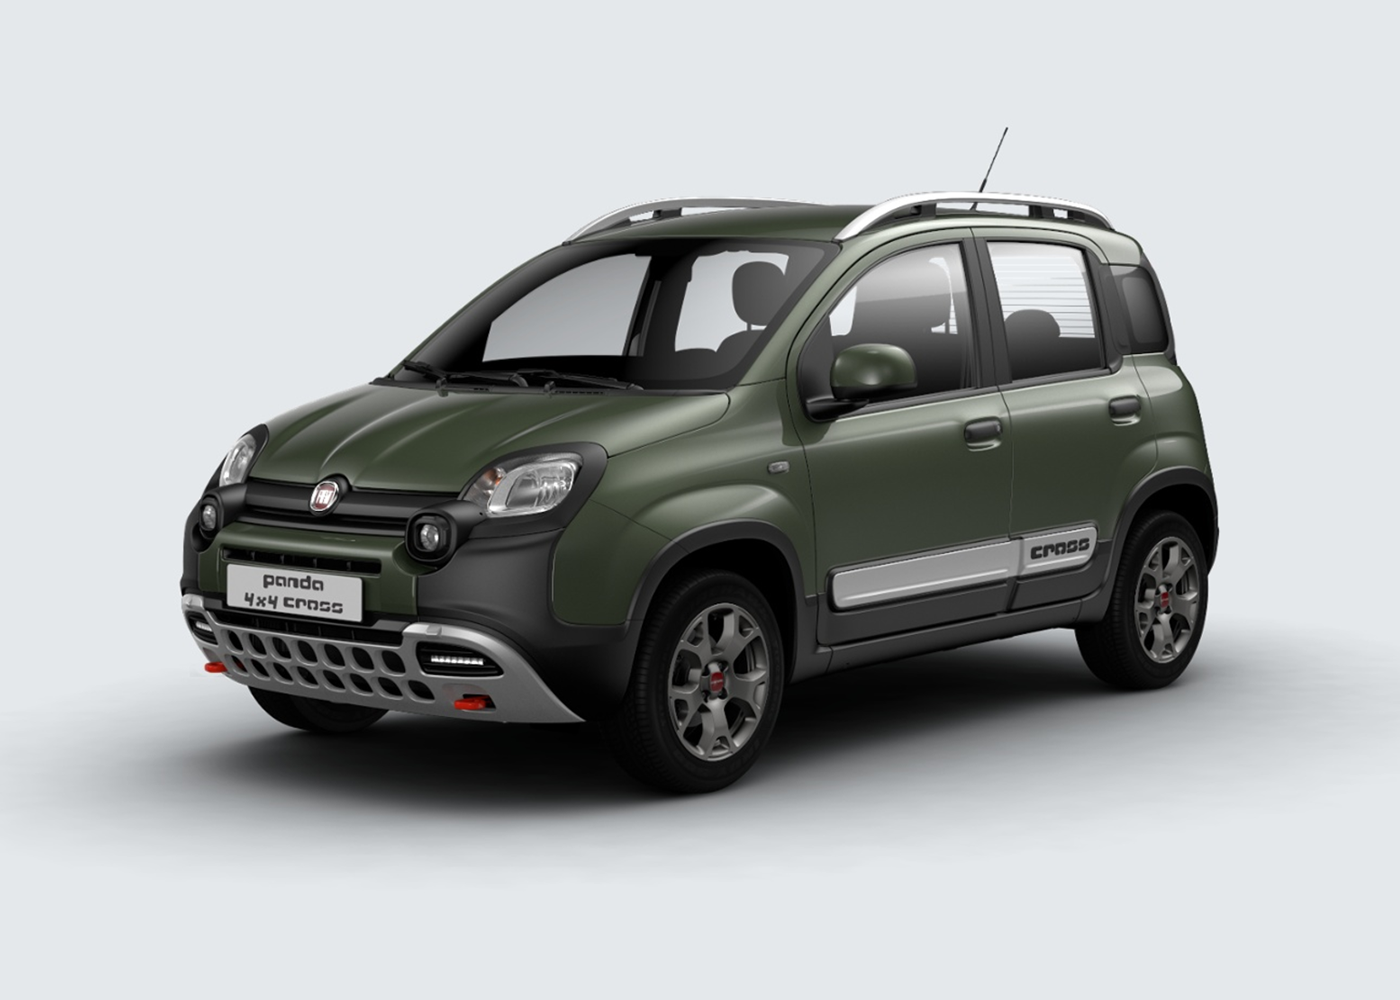 fiat panda cross verde toscana km0 a soli 16942 su miacar 7et4y. Black Bedroom Furniture Sets. Home Design Ideas